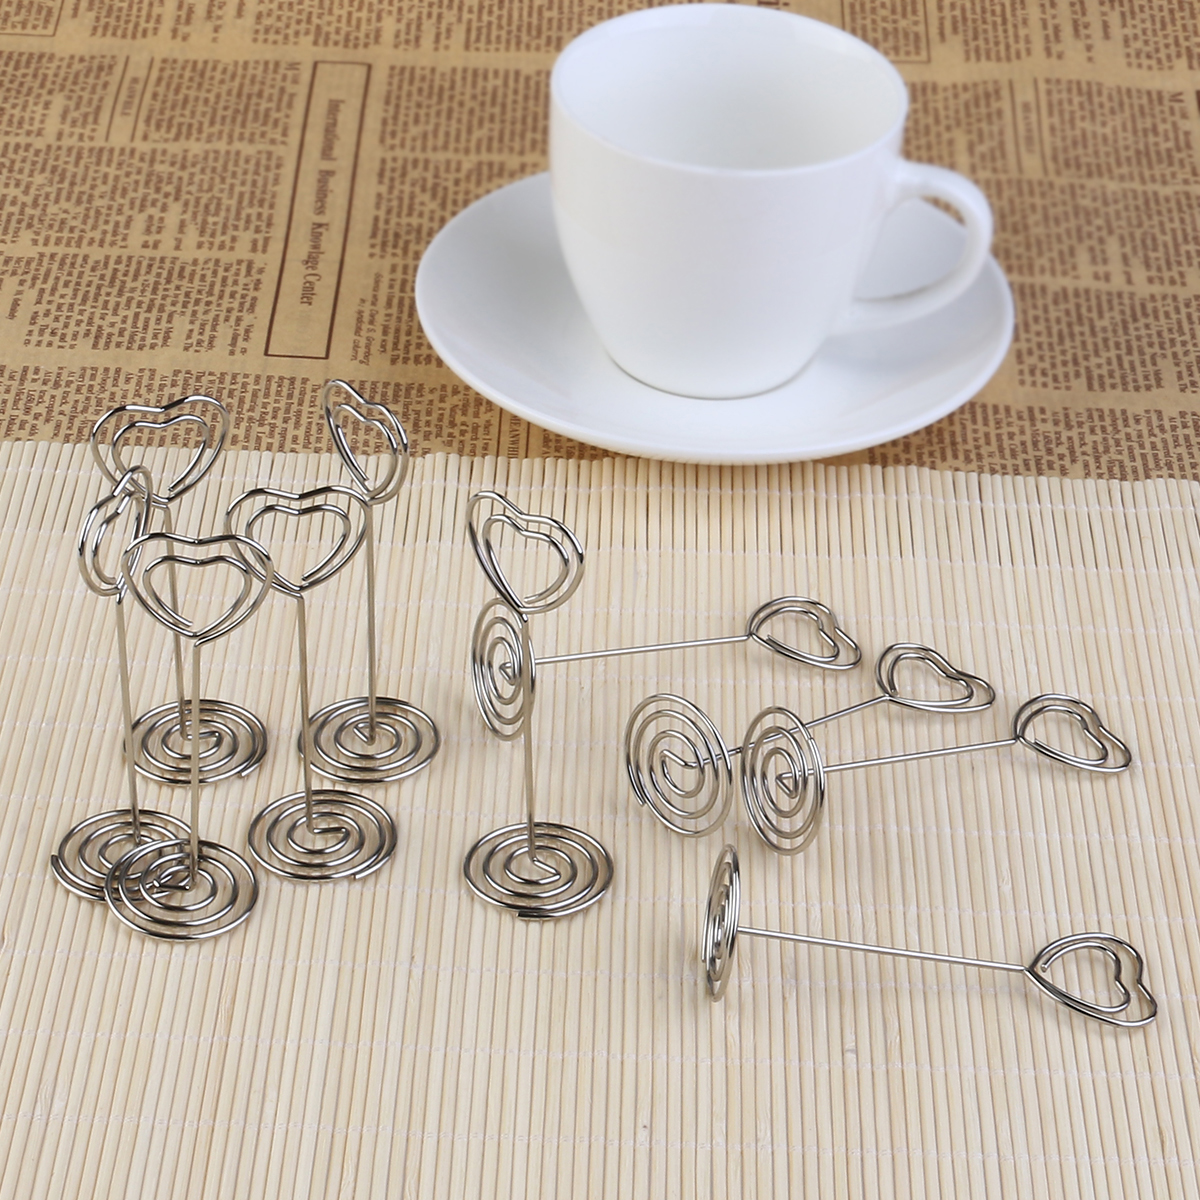 10pcs Place Card Holder Heart Shape Clips Place Card Holder/Photo Holder Wedding Table Decoration Favors(China (Mainland))